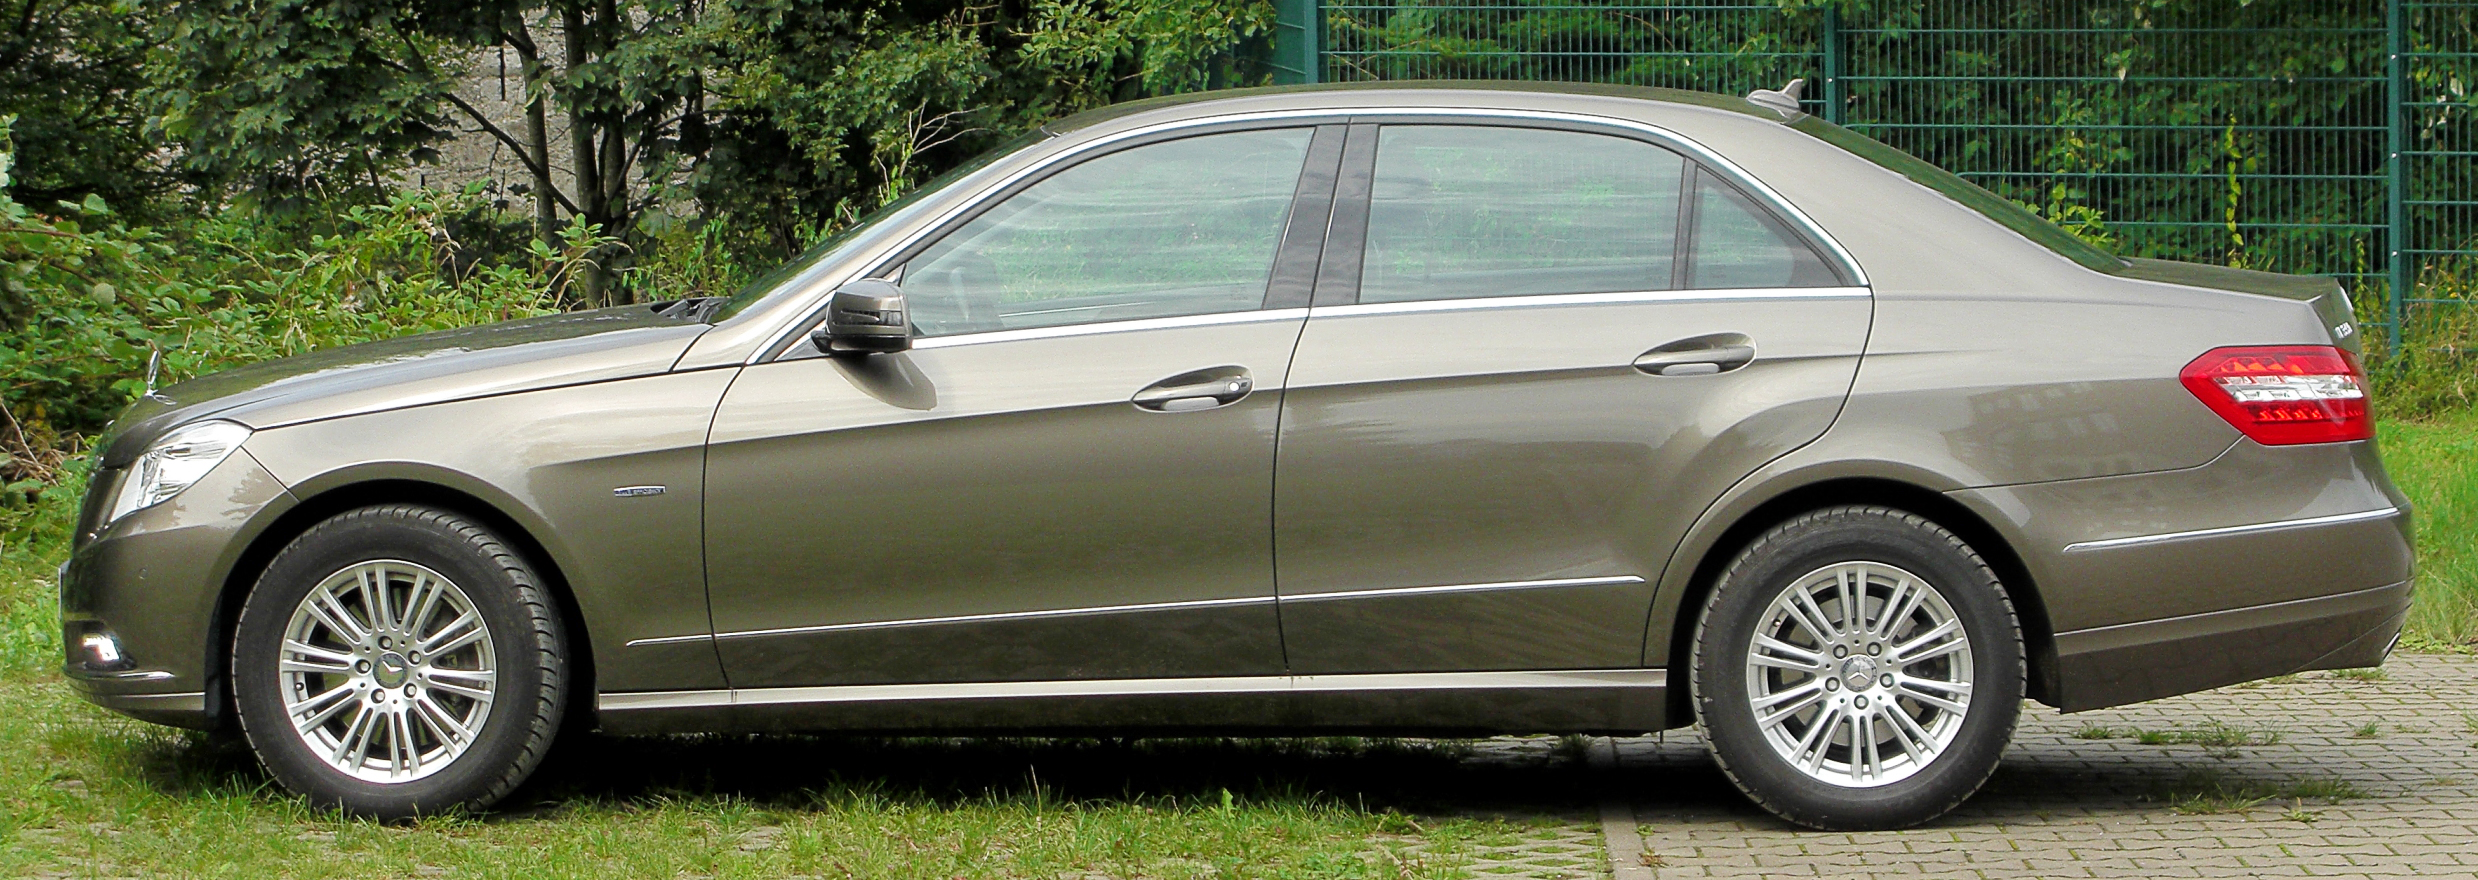 Dateimercedes E 350 Cdi Blueefficiency Elegance W212 Side